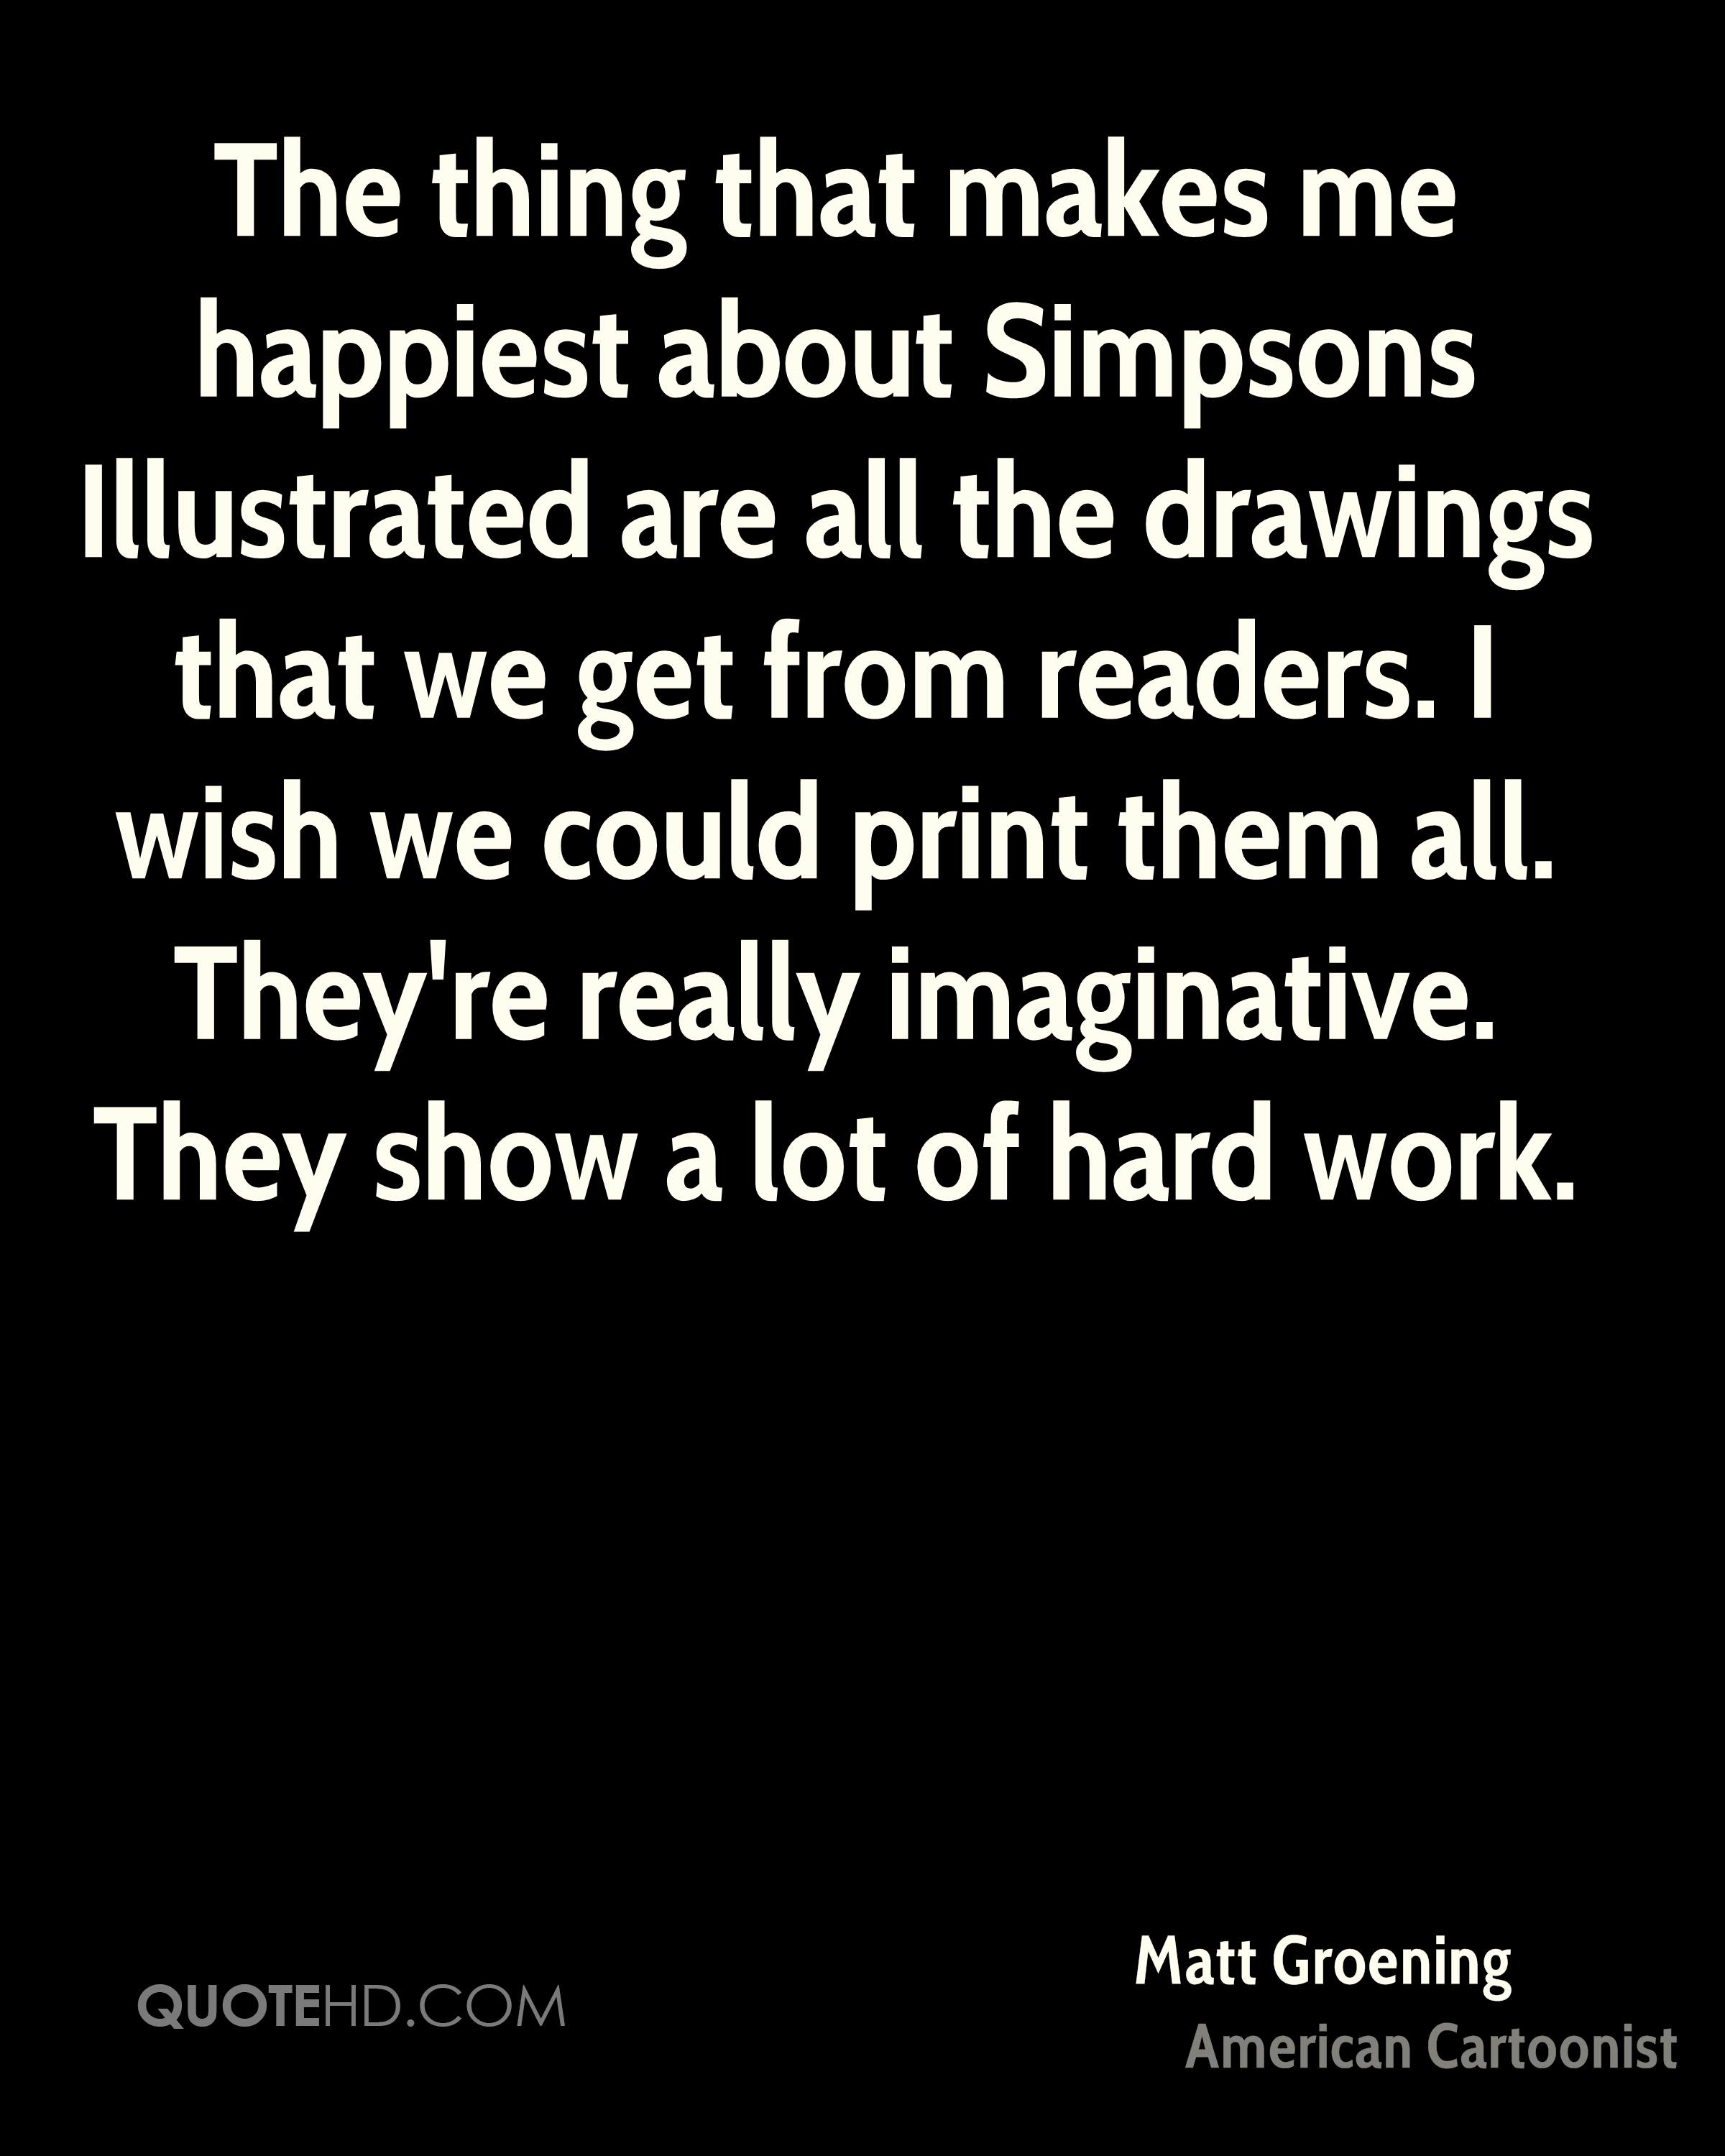 The thing that makes me happiest about Simpsons Illustrated are all the drawings that we get from readers. I wish we could print them all. They're really imaginative. They show a lot of hard work.